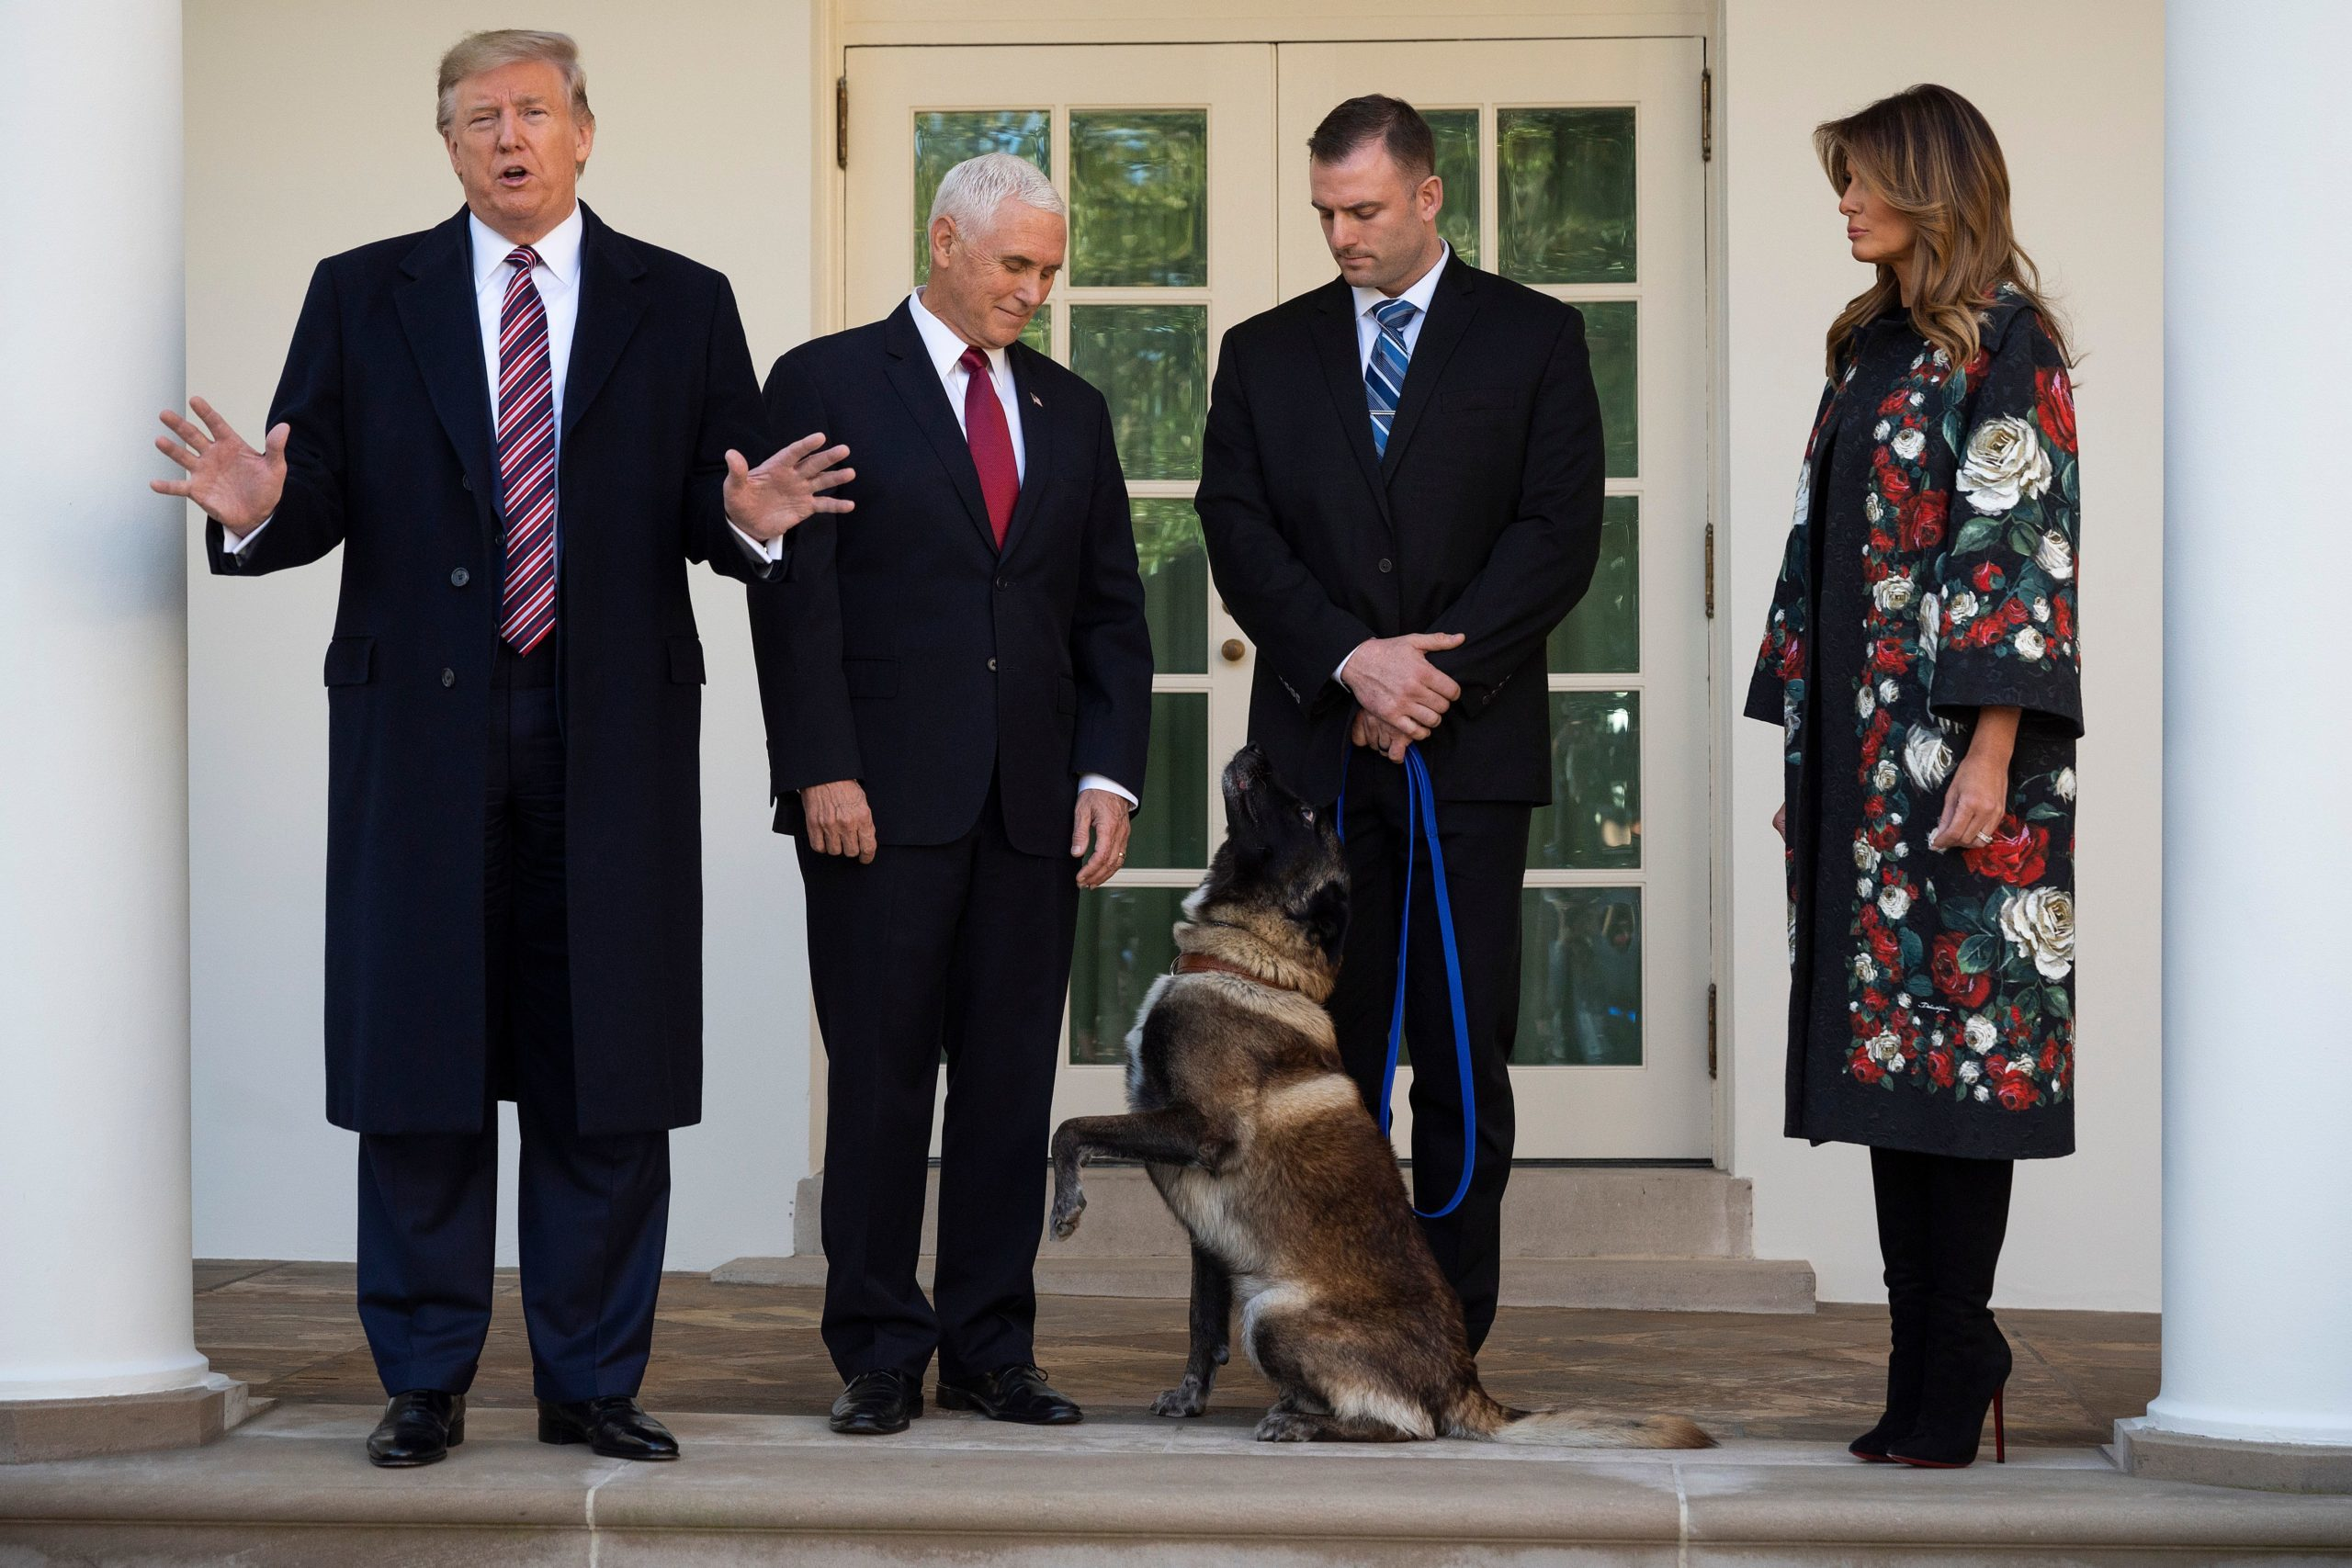 (FILES) In this file photo taken on November 25, 2019, US President Donald Trump (L), Vice President Mike Pence (2nd L) and First Lady Melania Trump (R) stand with Conan, the military dog that was involved with the death of ISIS leader Abu Bakr al-Baghdadi, at the White House in Washington, DC. (Photo by JIM WATSON/AFP via Getty Images)